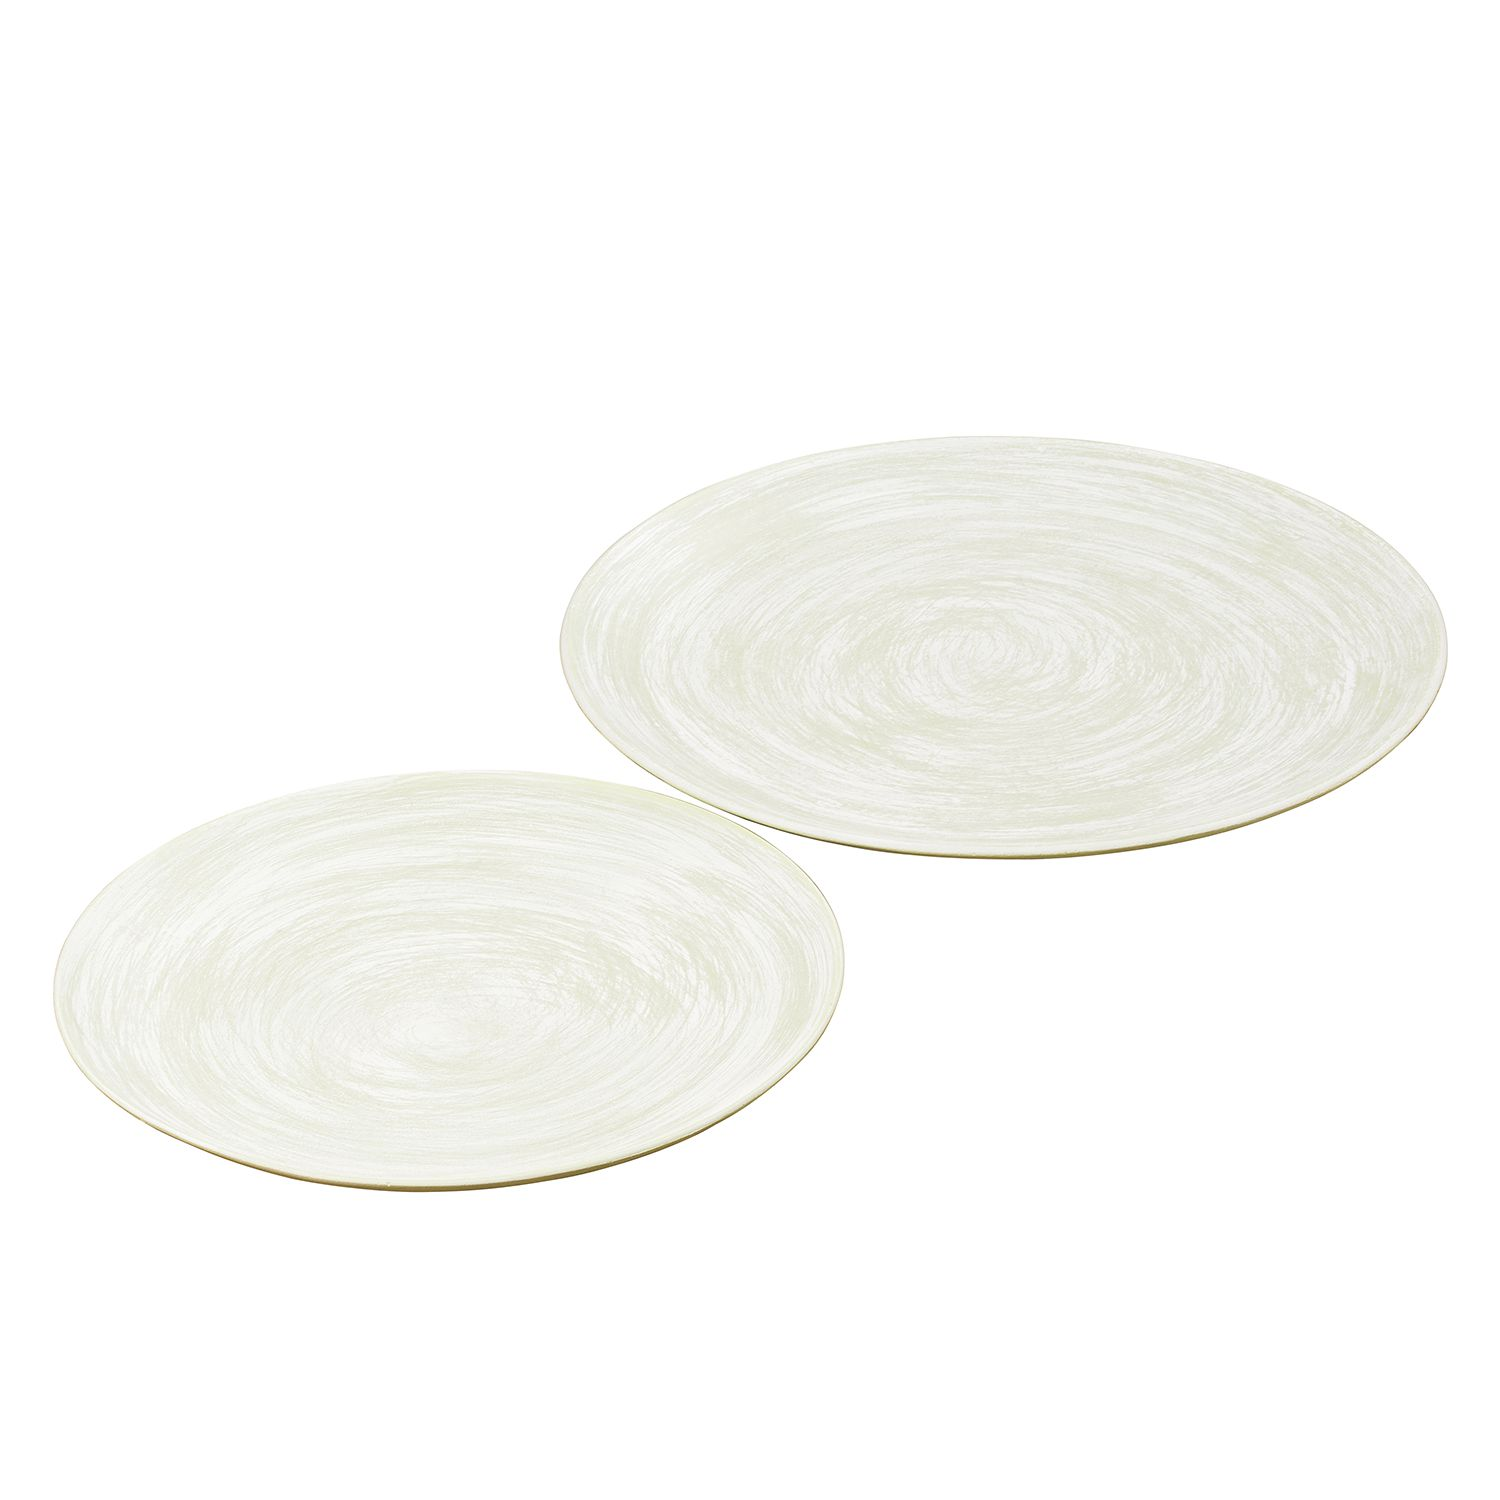 Home 24 - Assiette roanne (lot de 2) - vert, capeside westcoast